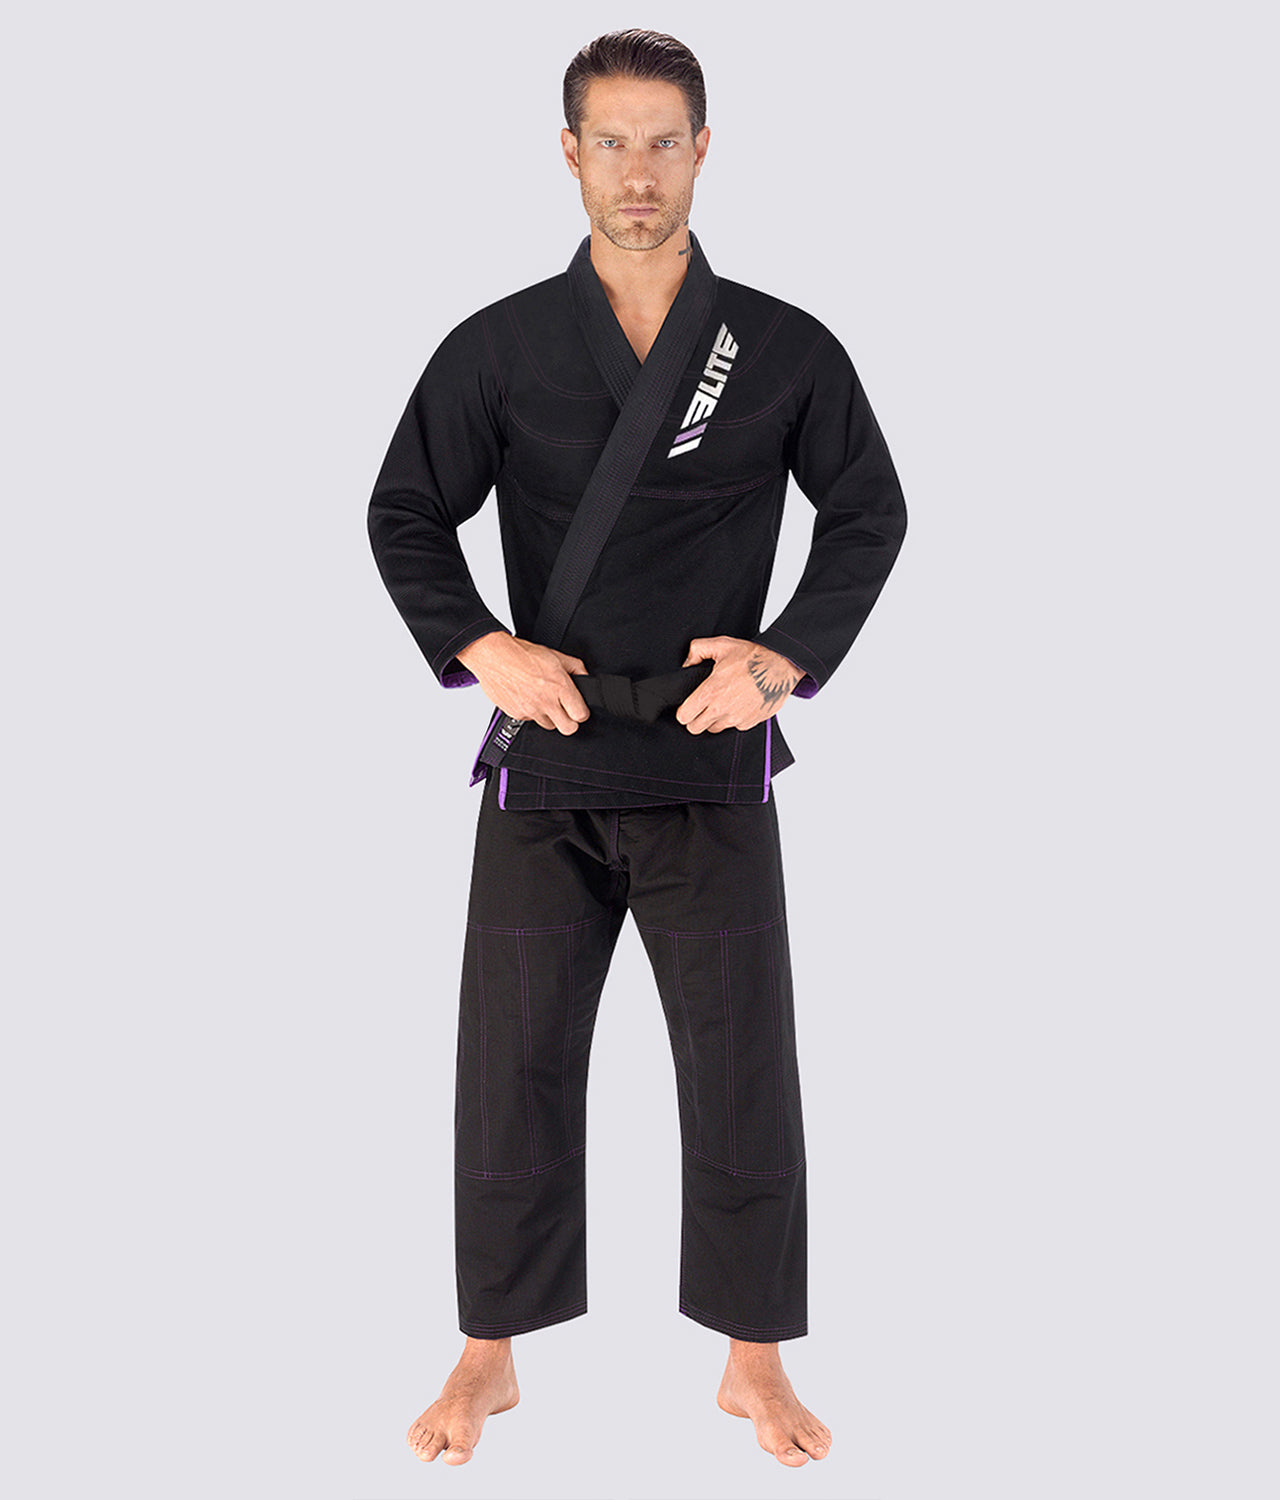 Elite Sports Ultra Light Preshrunk Reinforced Stitching Black Adult Brazilian Jiu Jitsu BJJ Gi  With Free White Belt